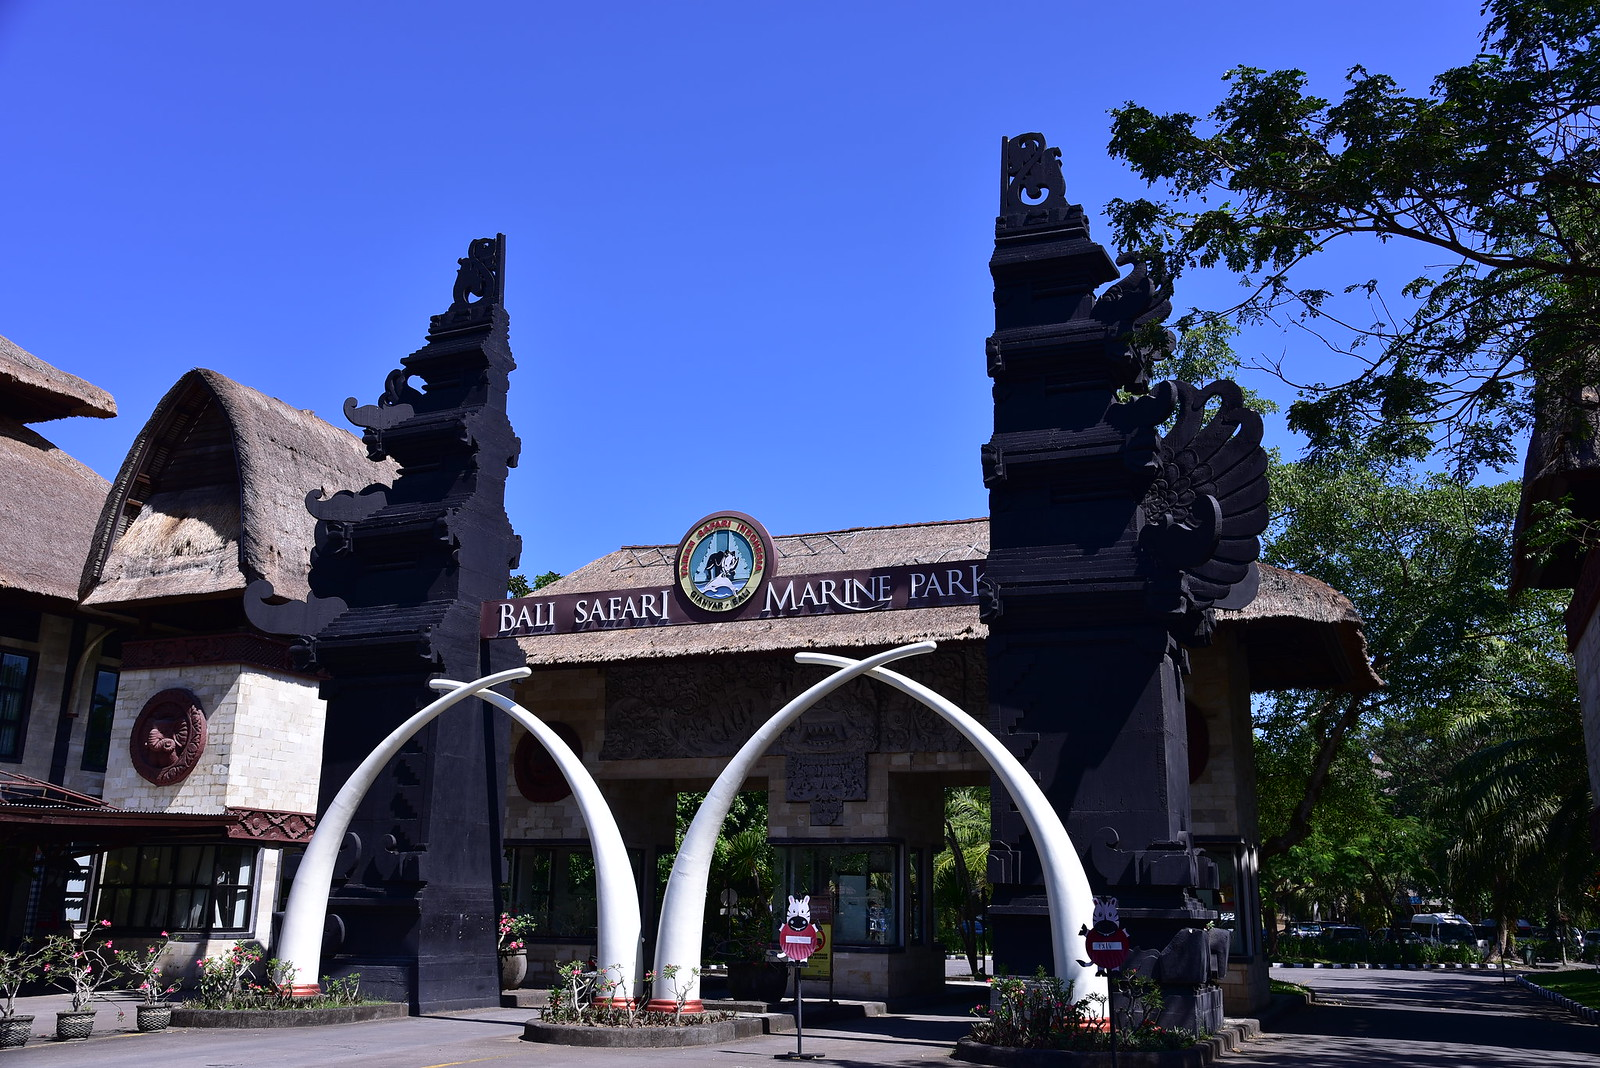 The main outer entrance gates to the Bali Safari and Marine Park